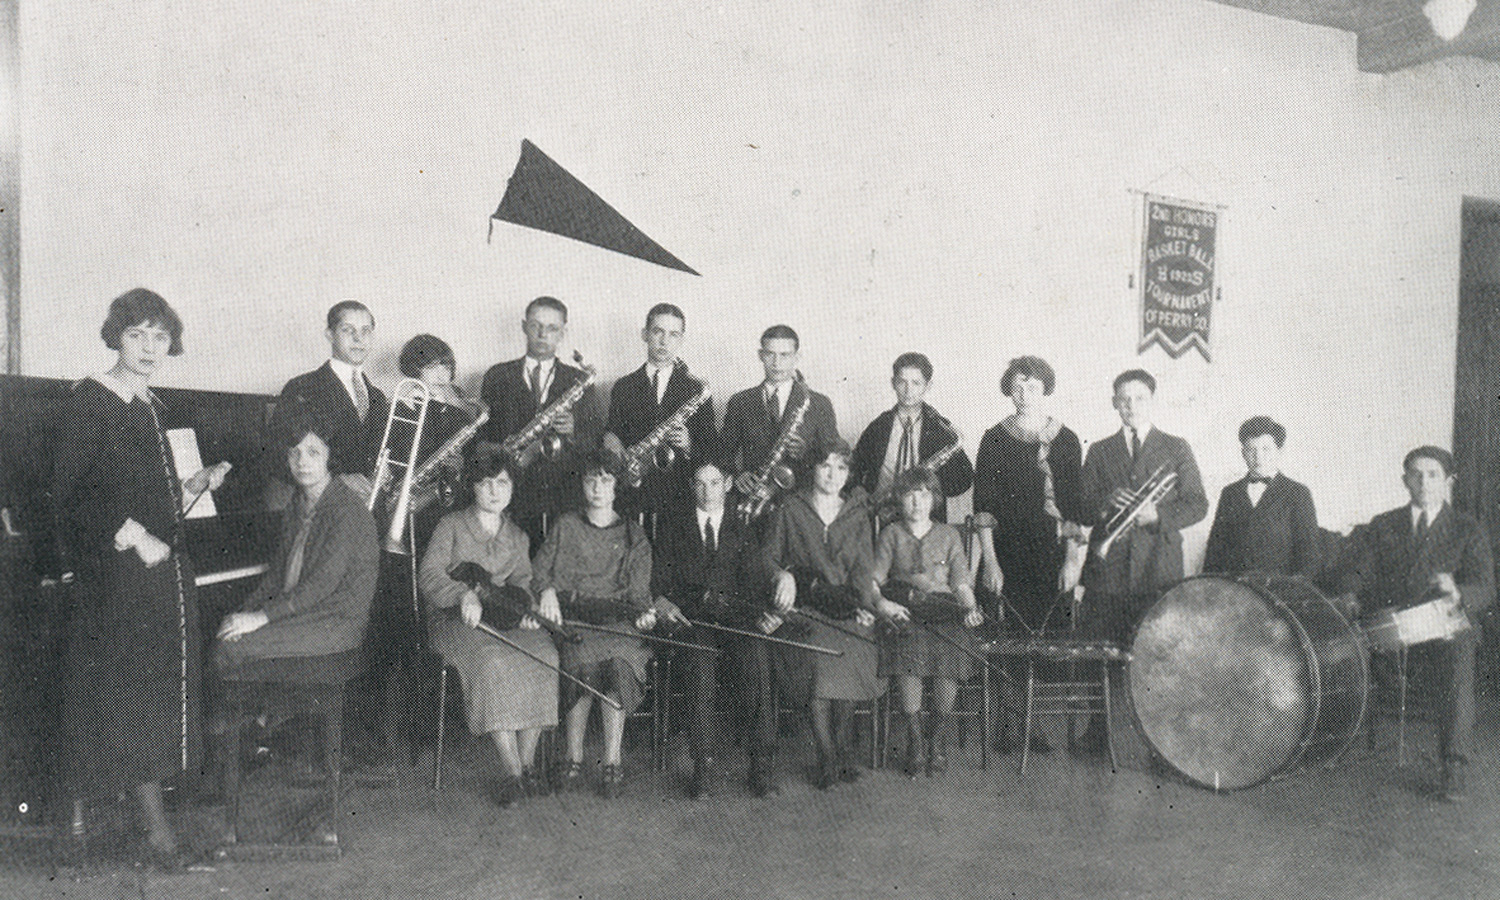 The Shawnee High School Orchestra, 1924. My grandfather Mordecai Williams is in the back row, fifth from the left, and his brother Bill is to his left.